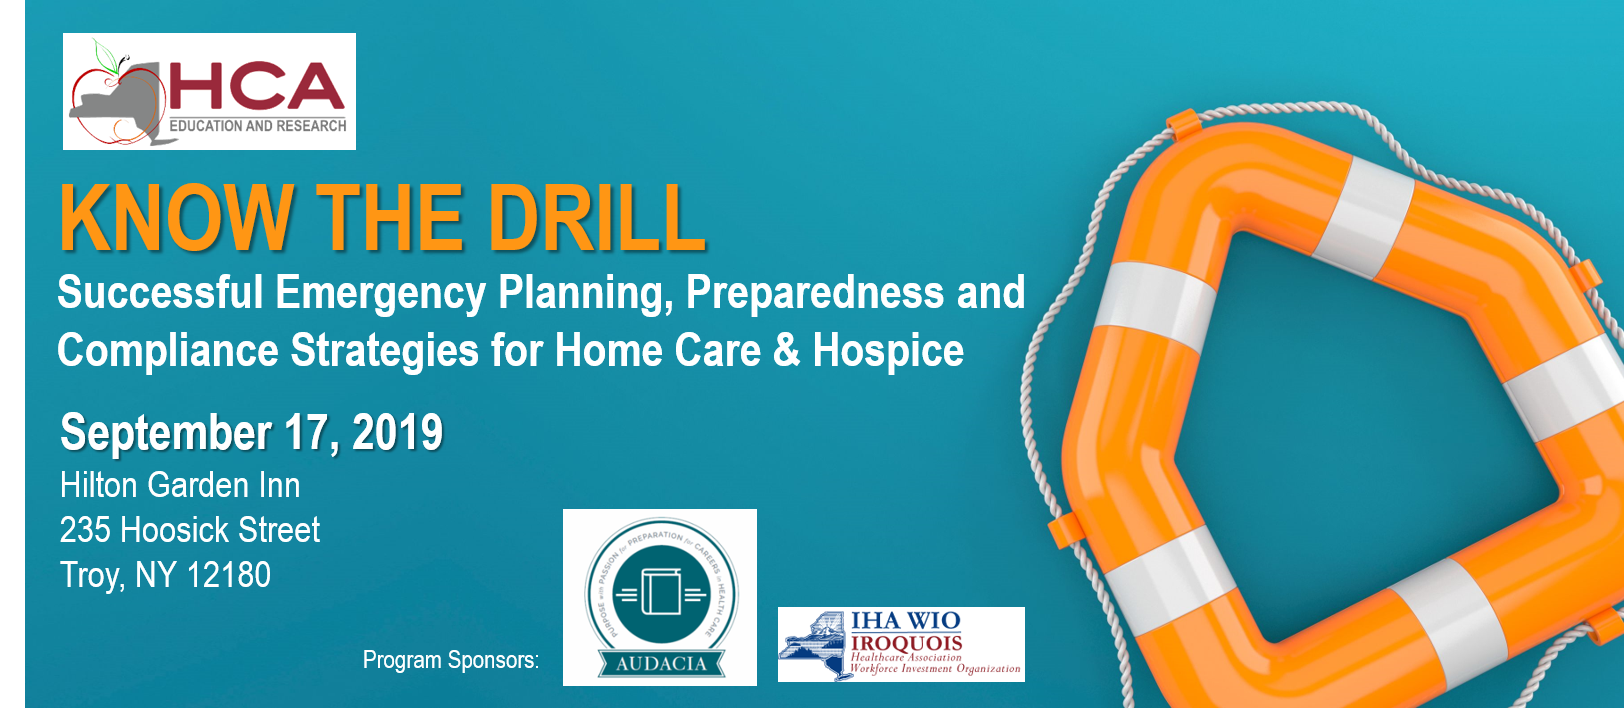 Register: Sept. 17 NYS Conference on Home Care, Hospice Emergency Preparedness